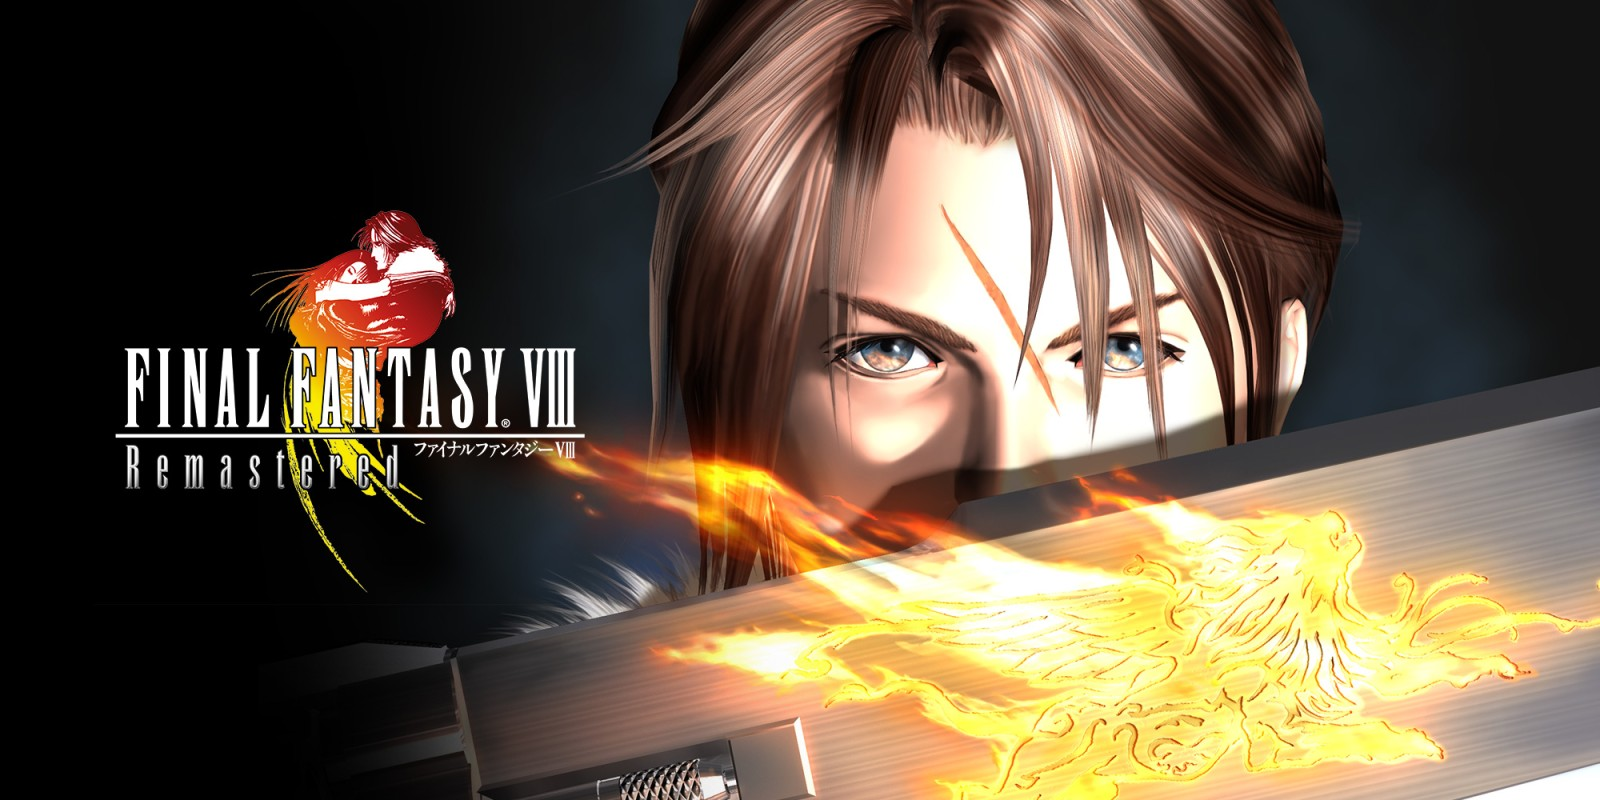 Final Fantasy VIII Remastered, disponible en todas las plataformas